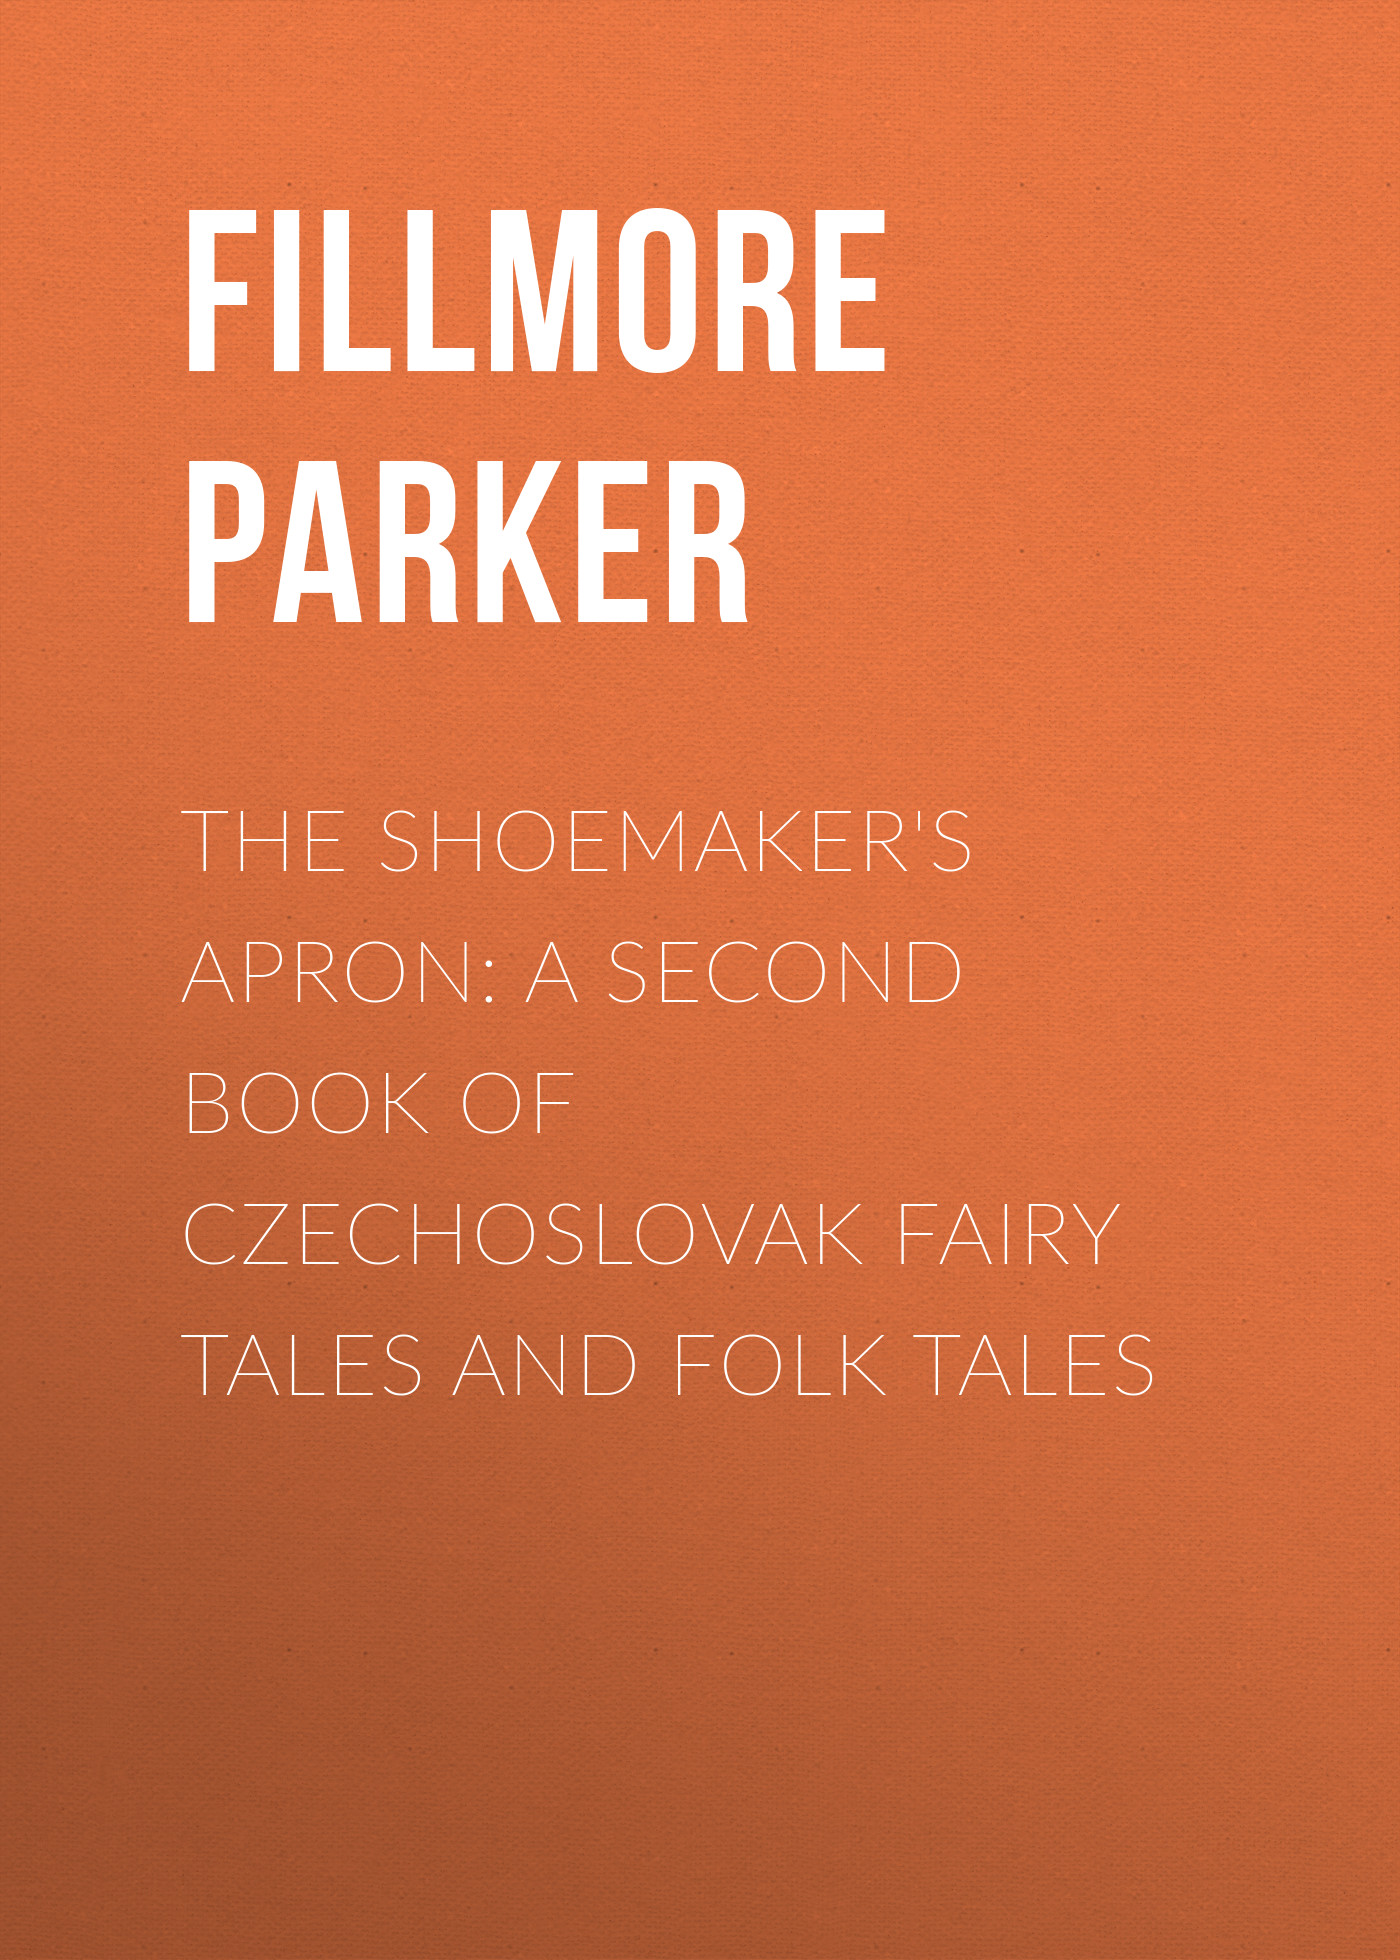 Fillmore Parker The Shoemaker's Apron: A Second Book of Czechoslovak Fairy Tales and Folk Tales nataliya vasilyeva the secrets of friendship fairy tales from magic forests isbn 9785448343049